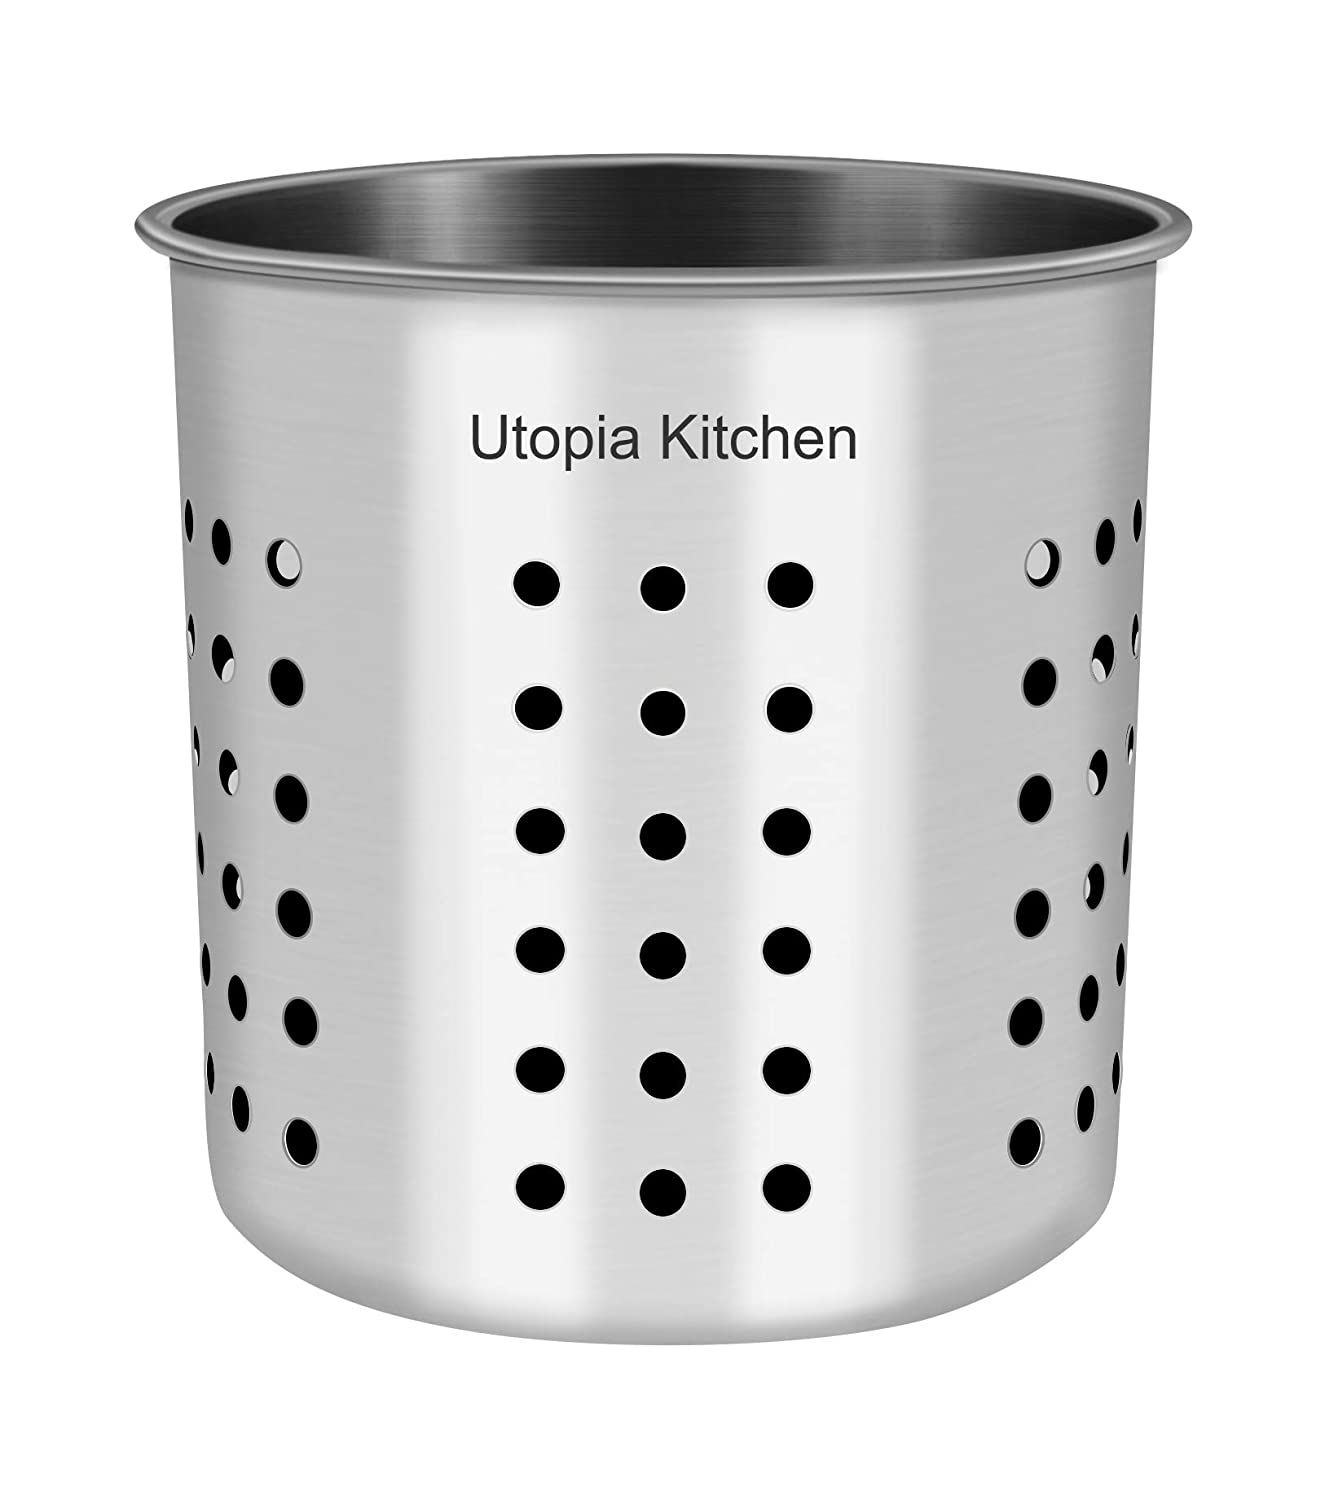 "Utopia Kitchen Utensil Holder - Utensil Container 5"" x 5.3"" - Utensil Crock - Flatware Caddy - Brushed Stainless Steel Cookware Cutlery Utensil Holder"